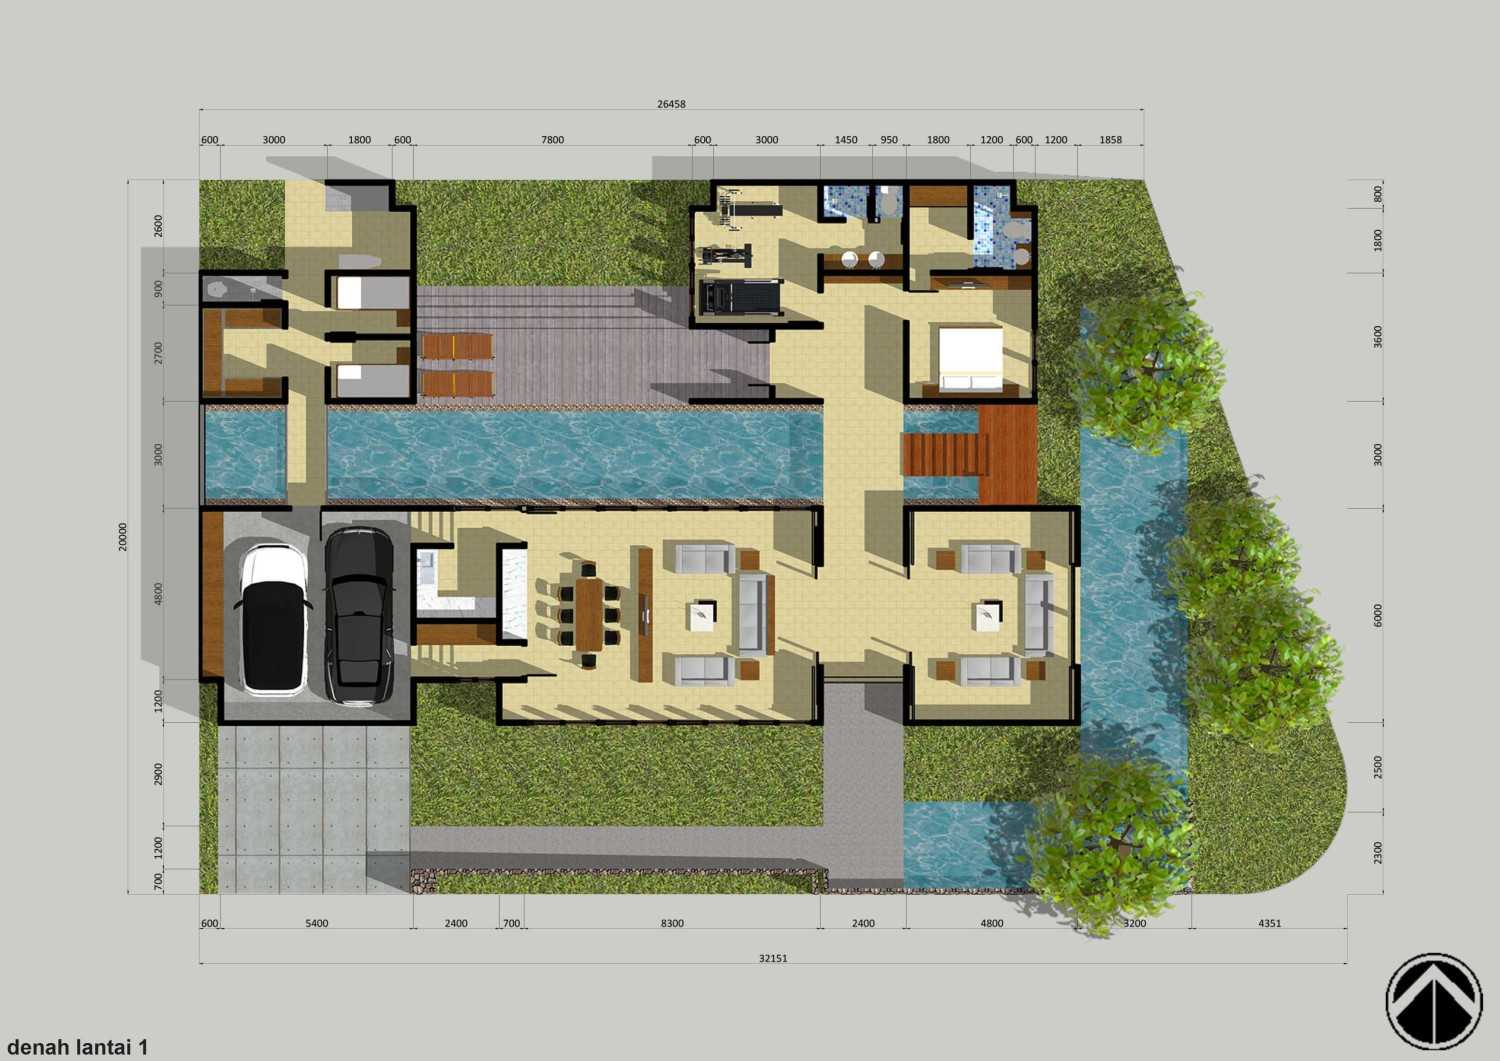 Monokroma Architect Puri Indah House Jakarta Jakarta 1-Draft-1-Ground-Floor-Plan  15127